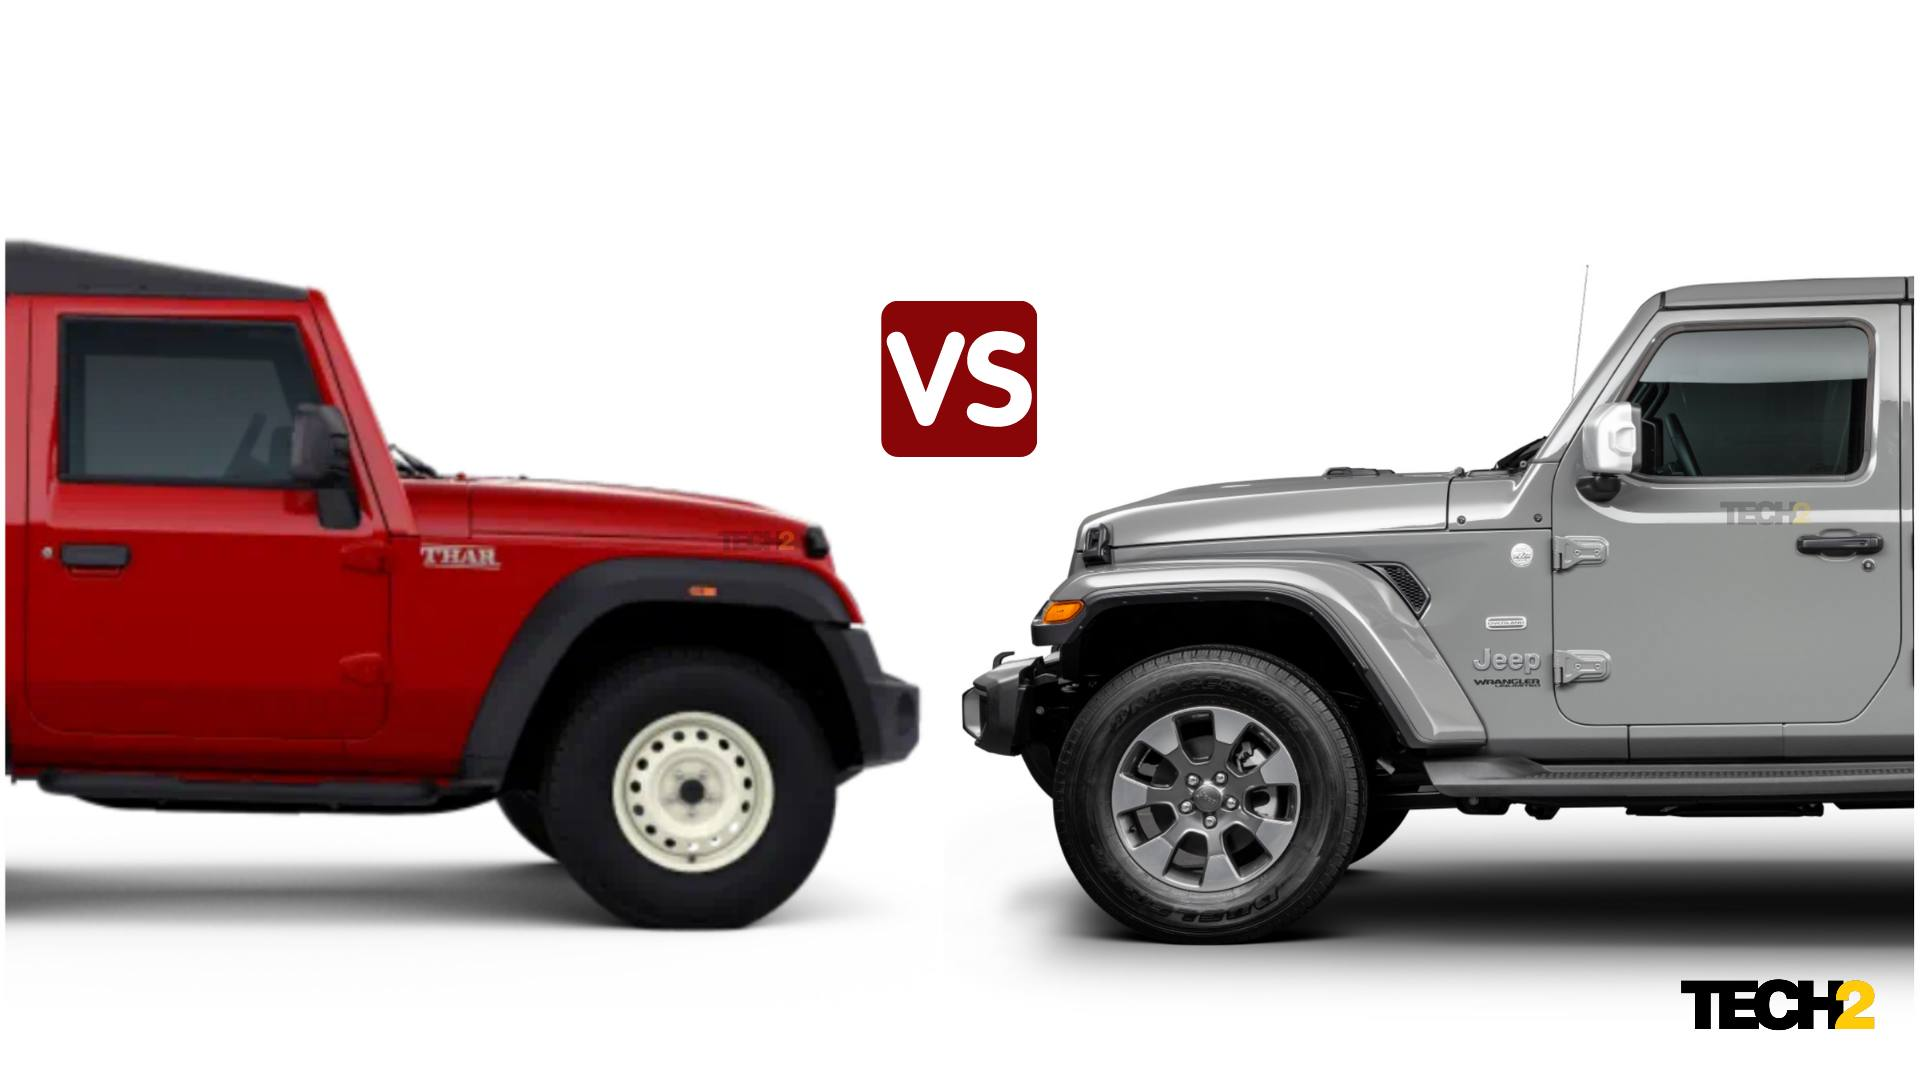 In visual terms, the second-gen Mahindra Thar is closely linked to the iconic Jeep Wrangler. Image: Tech2/Amaan Ahmed